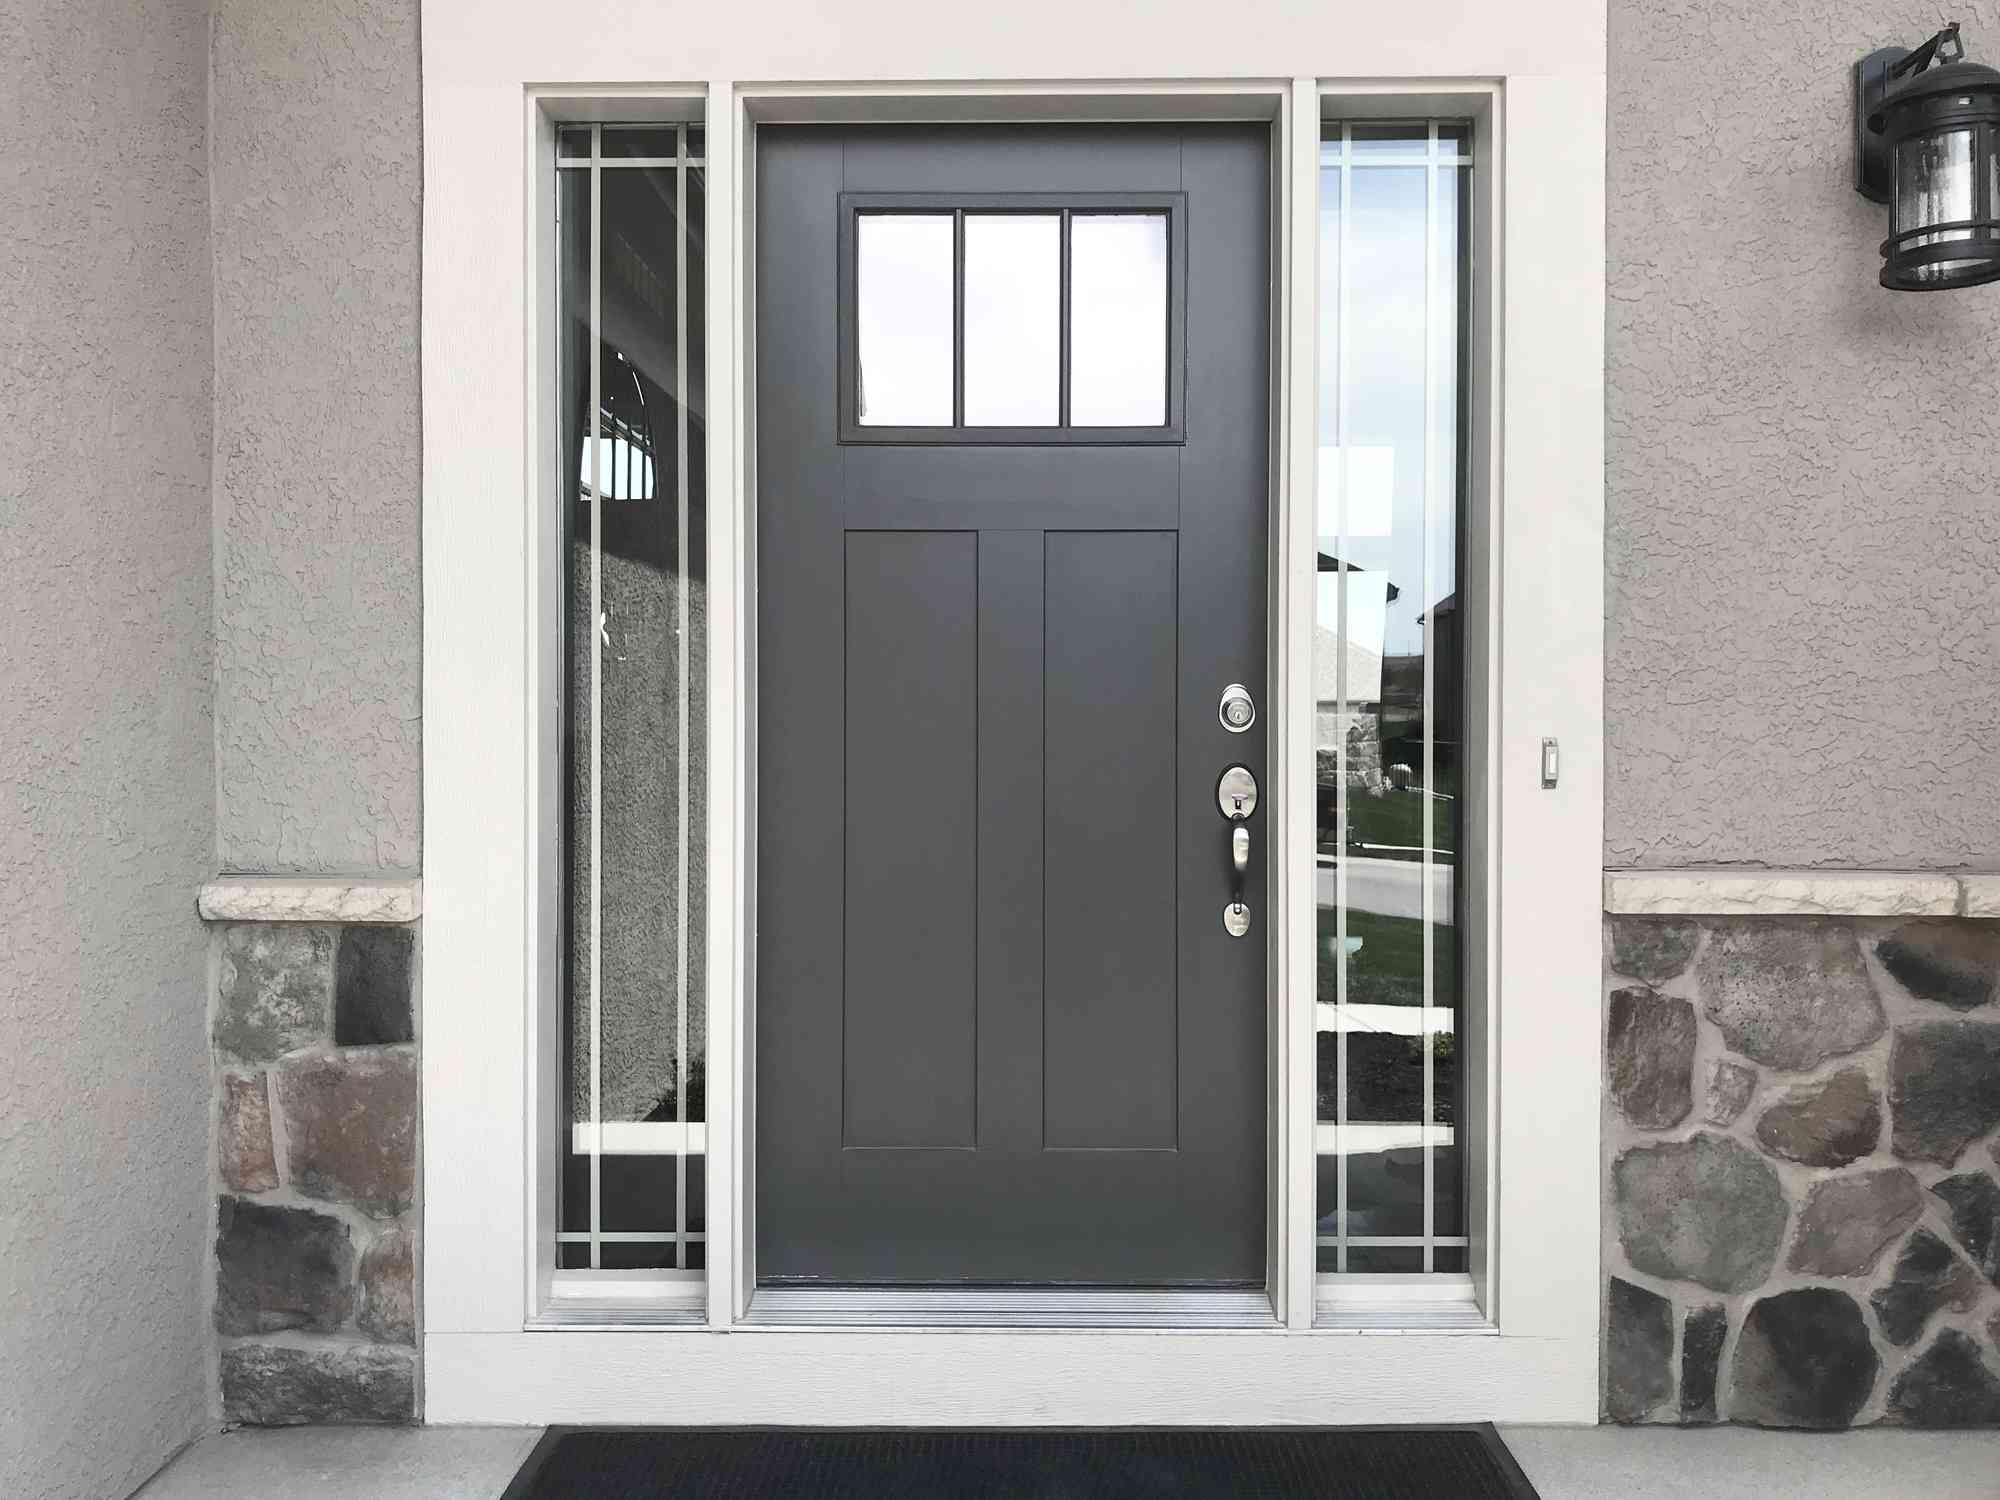 Gray front door on a house